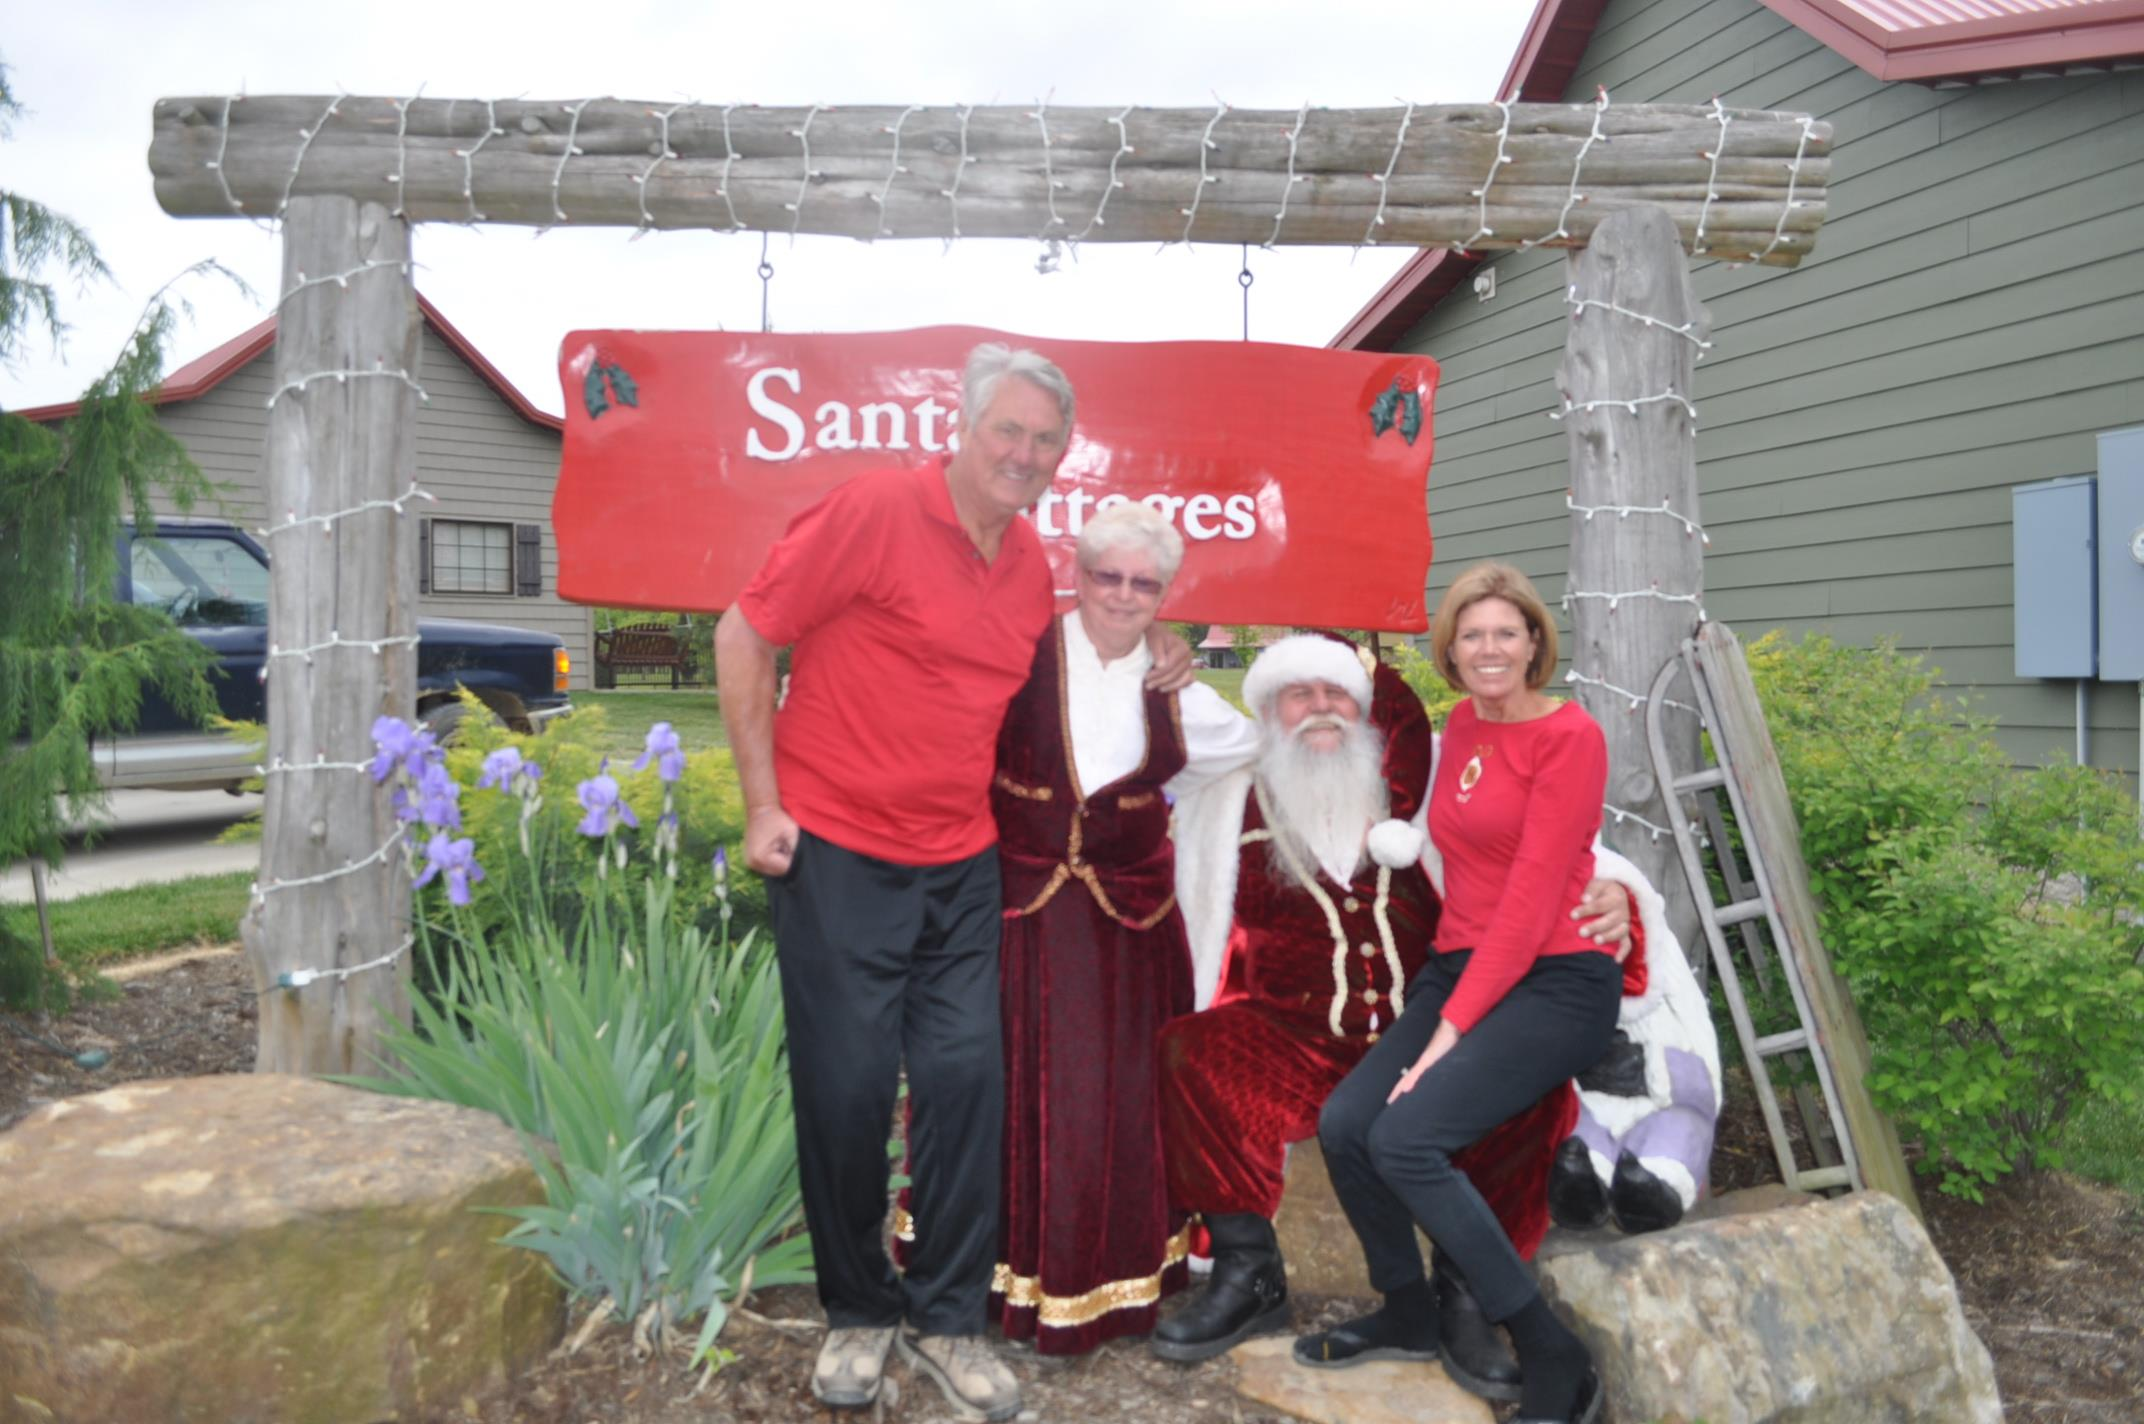 Mr-and-Mrs-Clause-with-couple.jpg